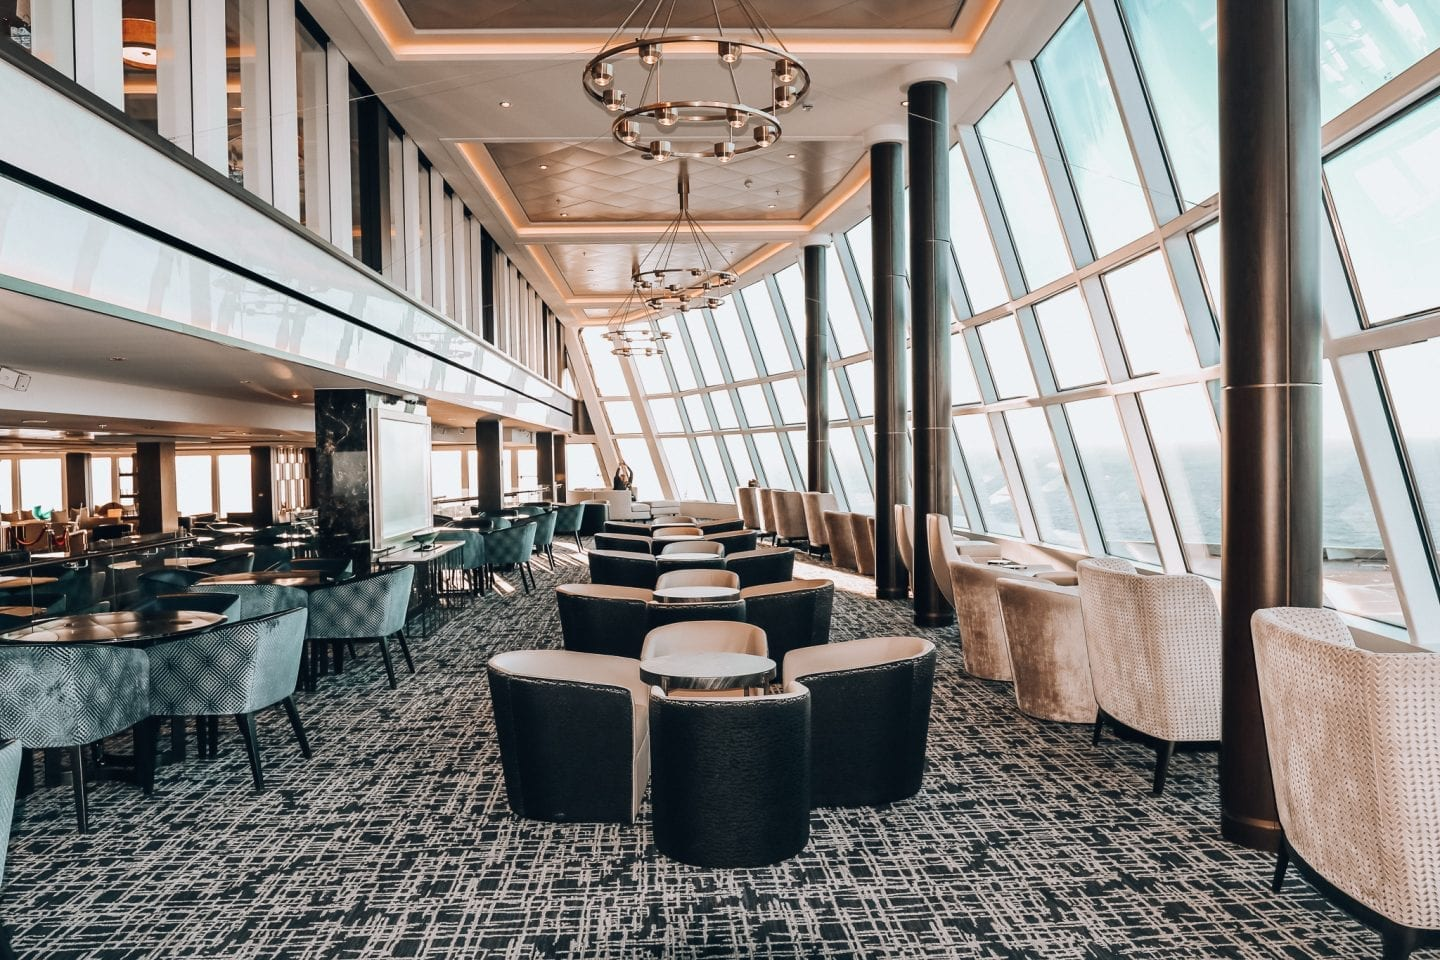 Alaska Holidays: A 7 Day Cruise Itinerary With Norwegian